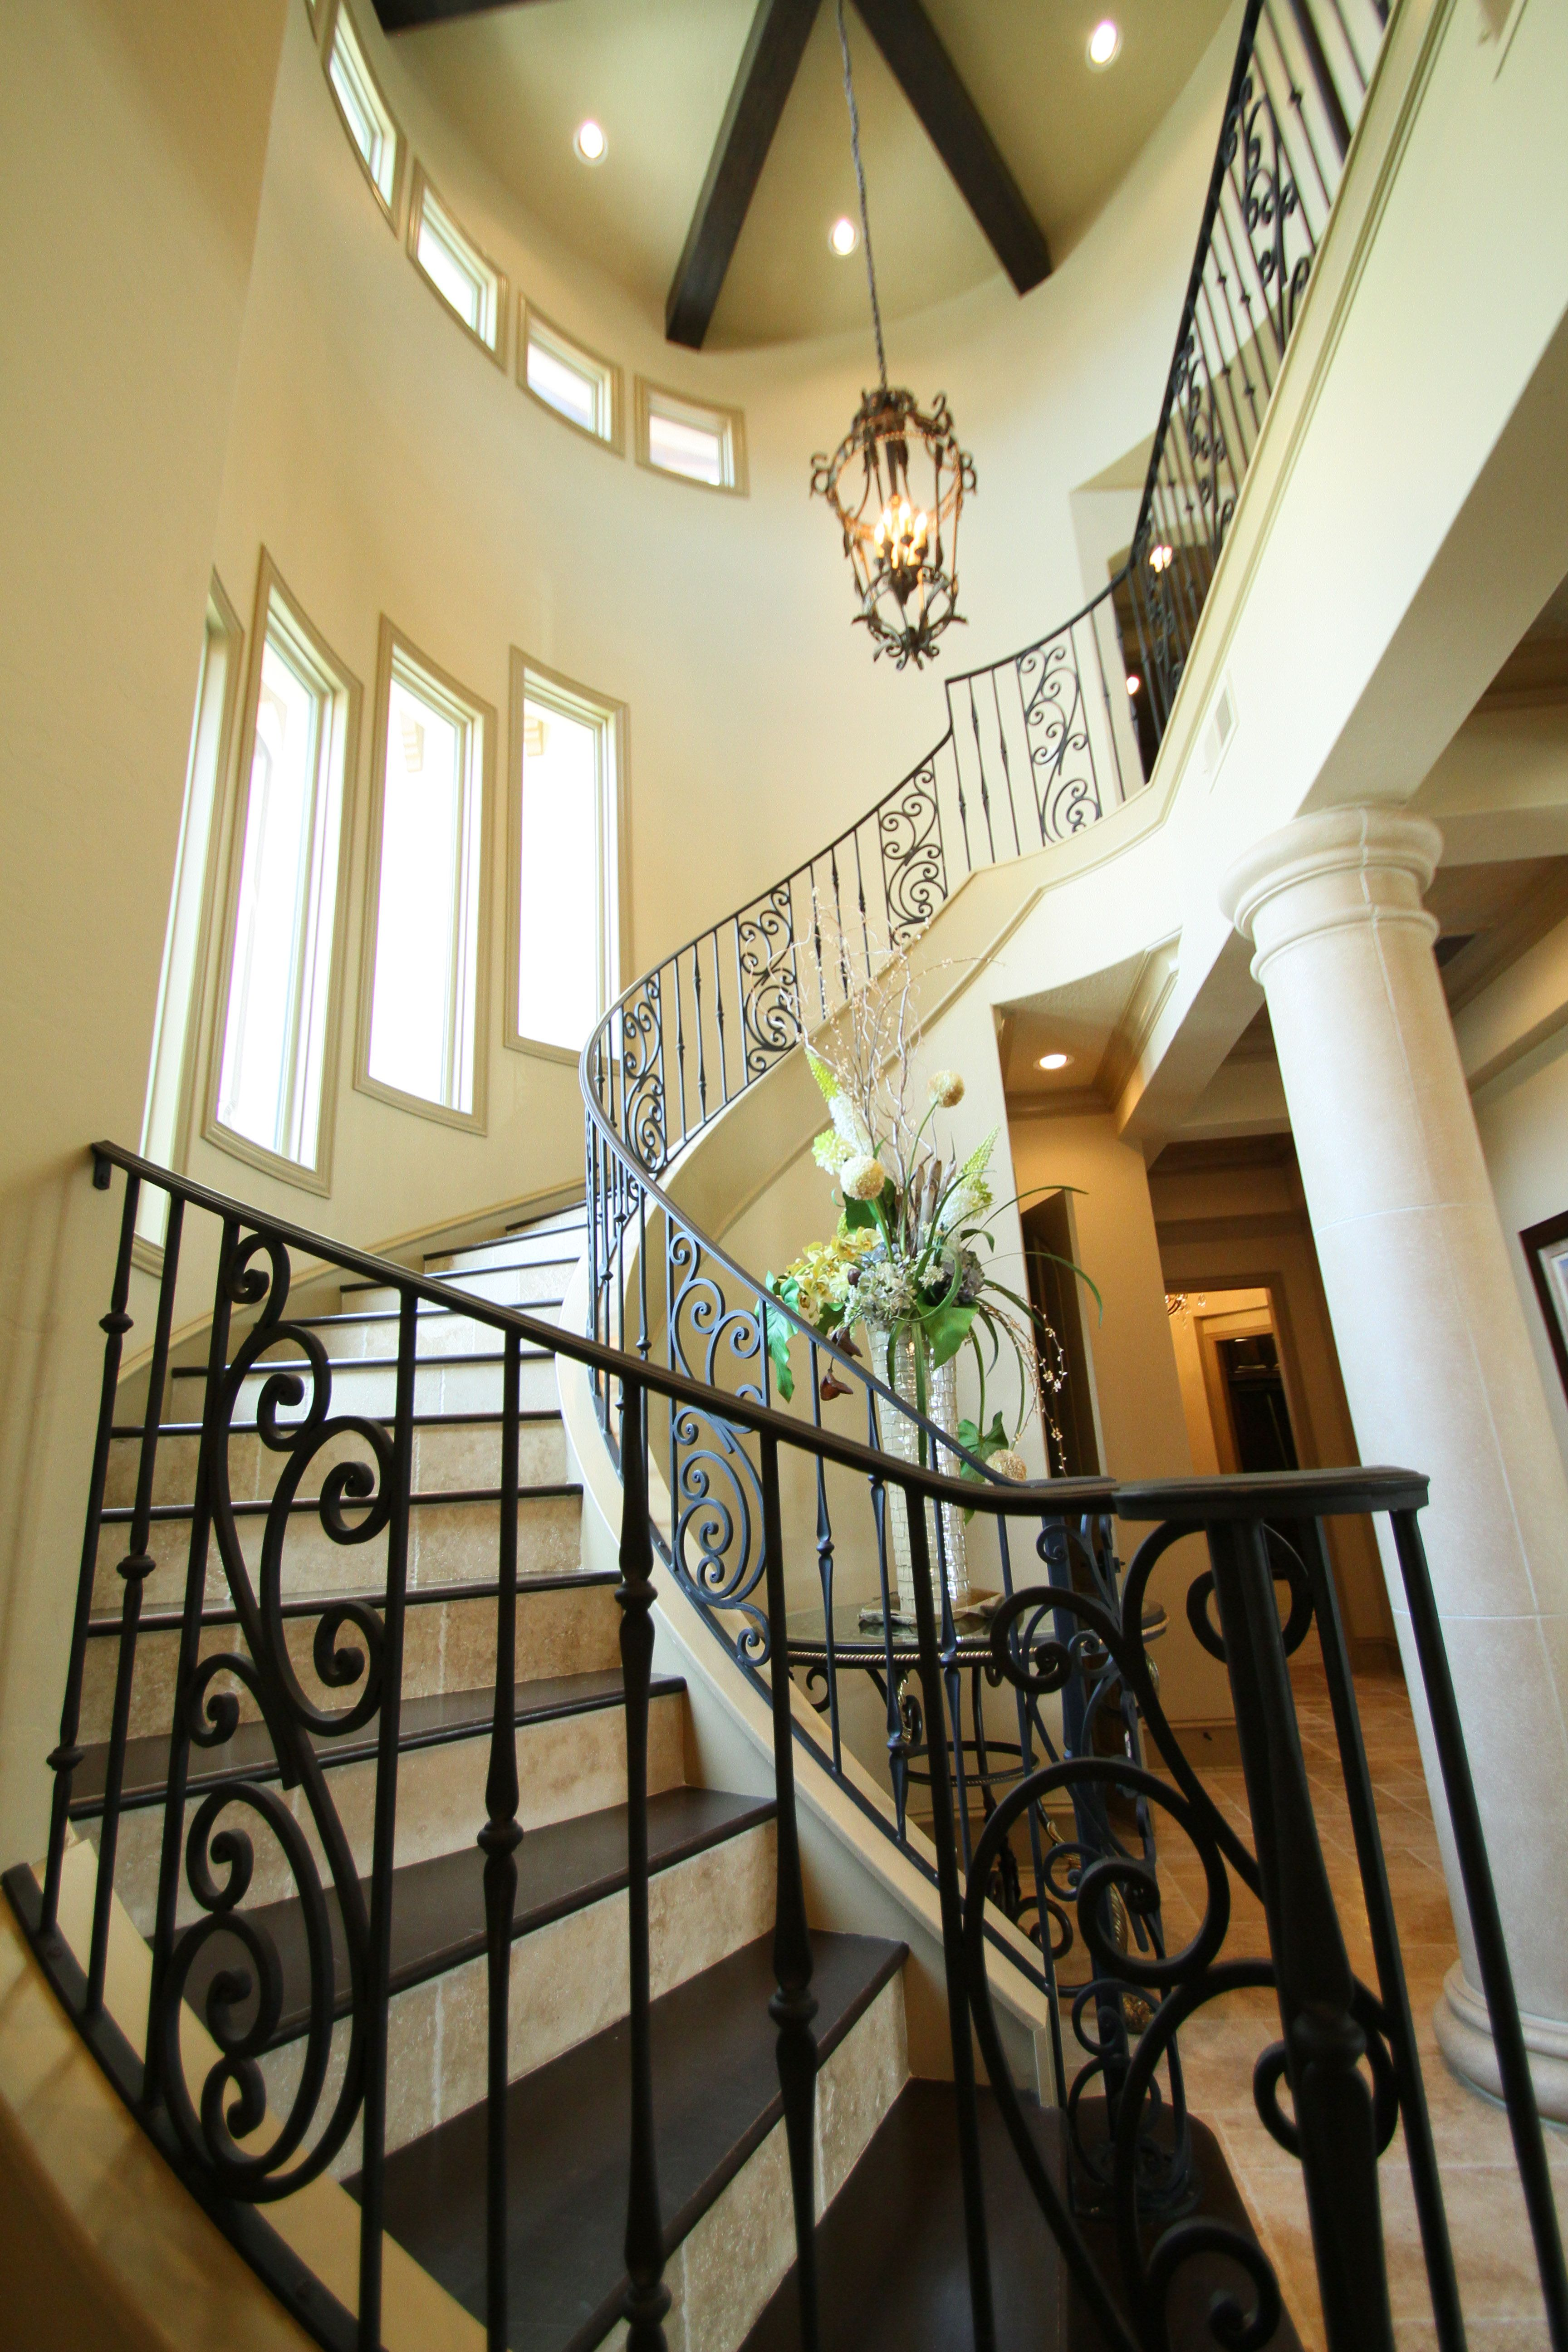 interior inspiring marvelous italian villa interior design this half spiral staircase leads to the second floor of a luxury italian mediterranean style home